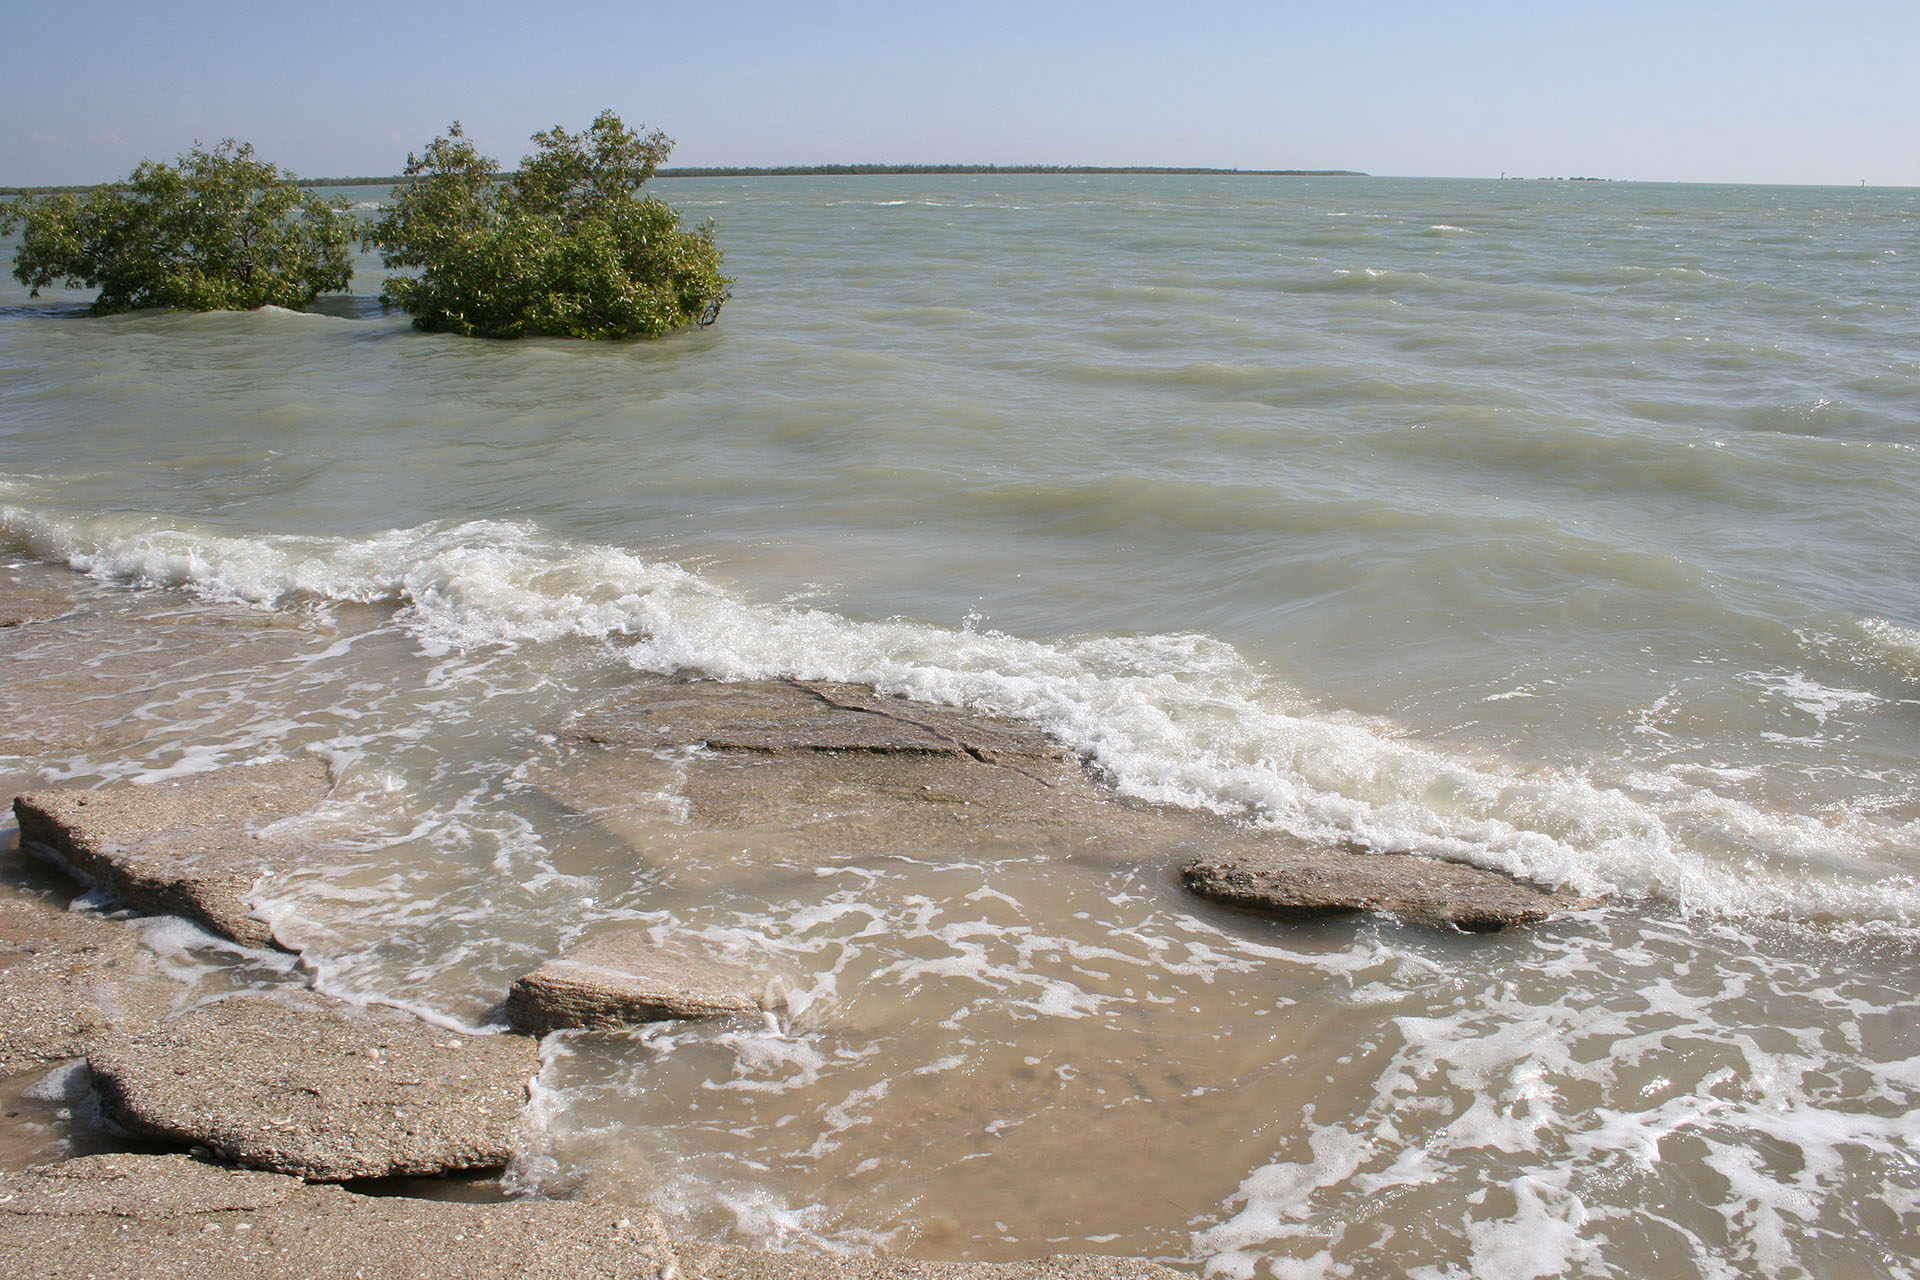 The Gulf of Carpentaria.